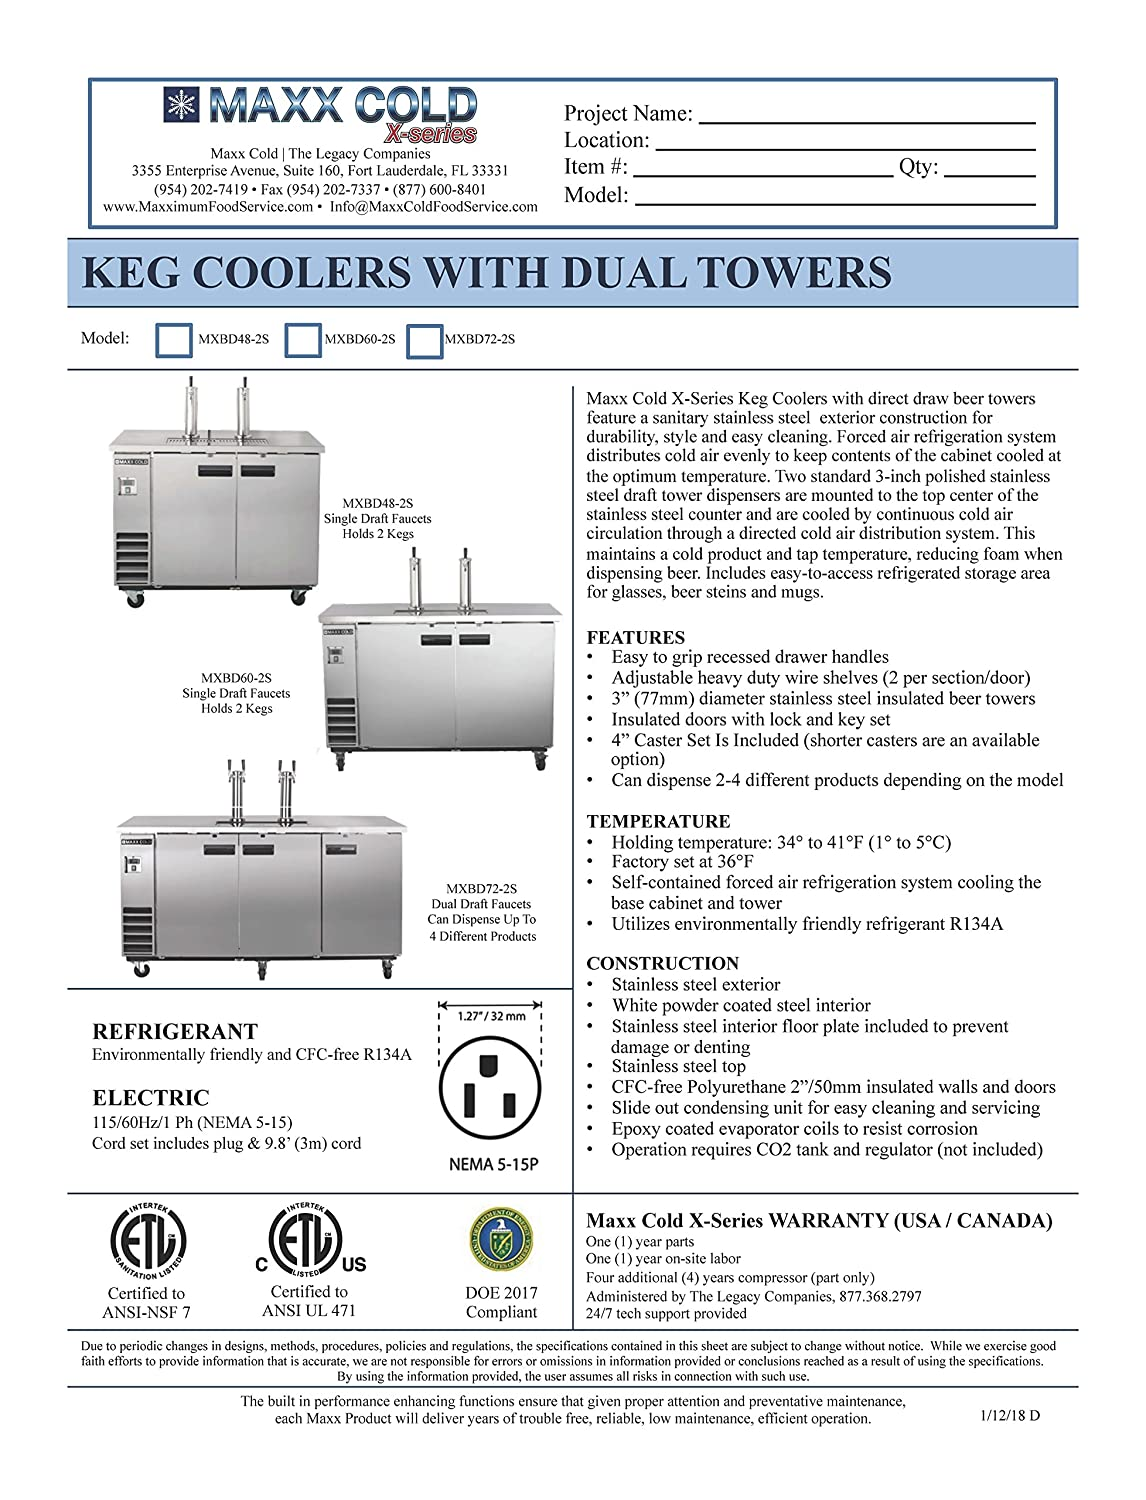 Wiring Diagram For Keg Beer Electrical Stc1000 Temp Controller The Homebrew Forum Outdoor Cooler Product Diagrams U2022 Tap Parts